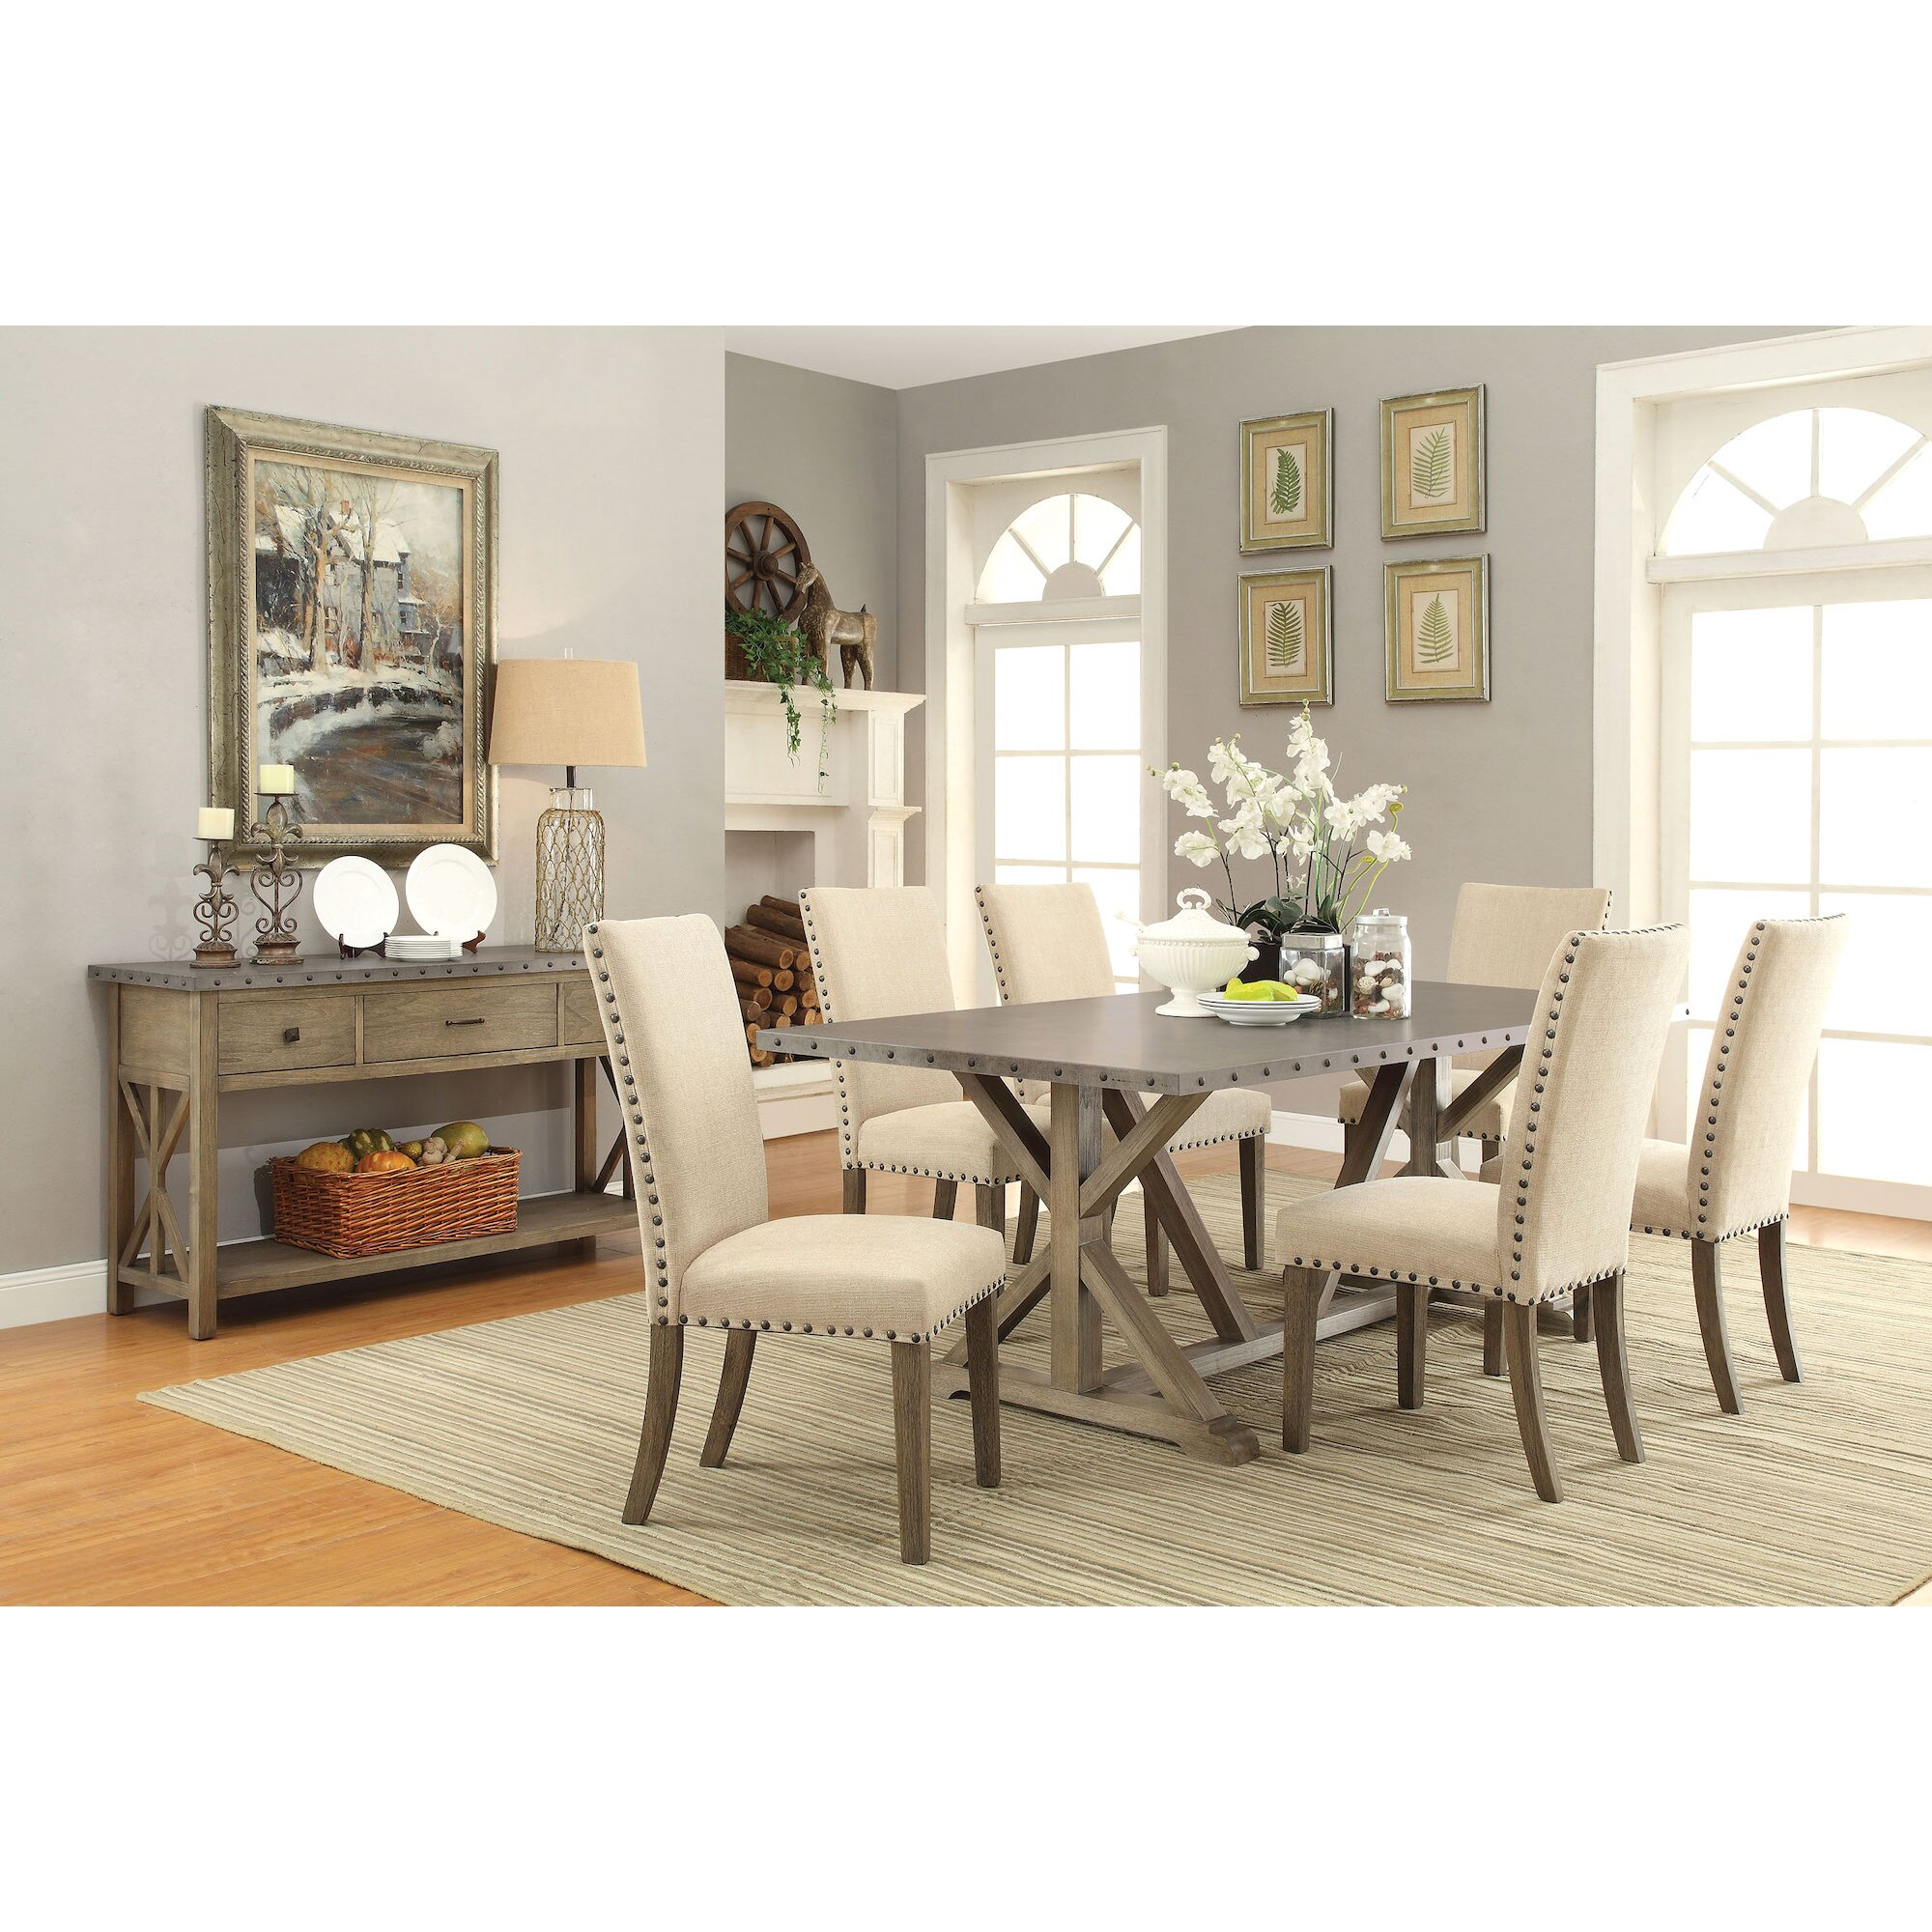 7 piece dining room set under $500 - moncler-factory-outlets